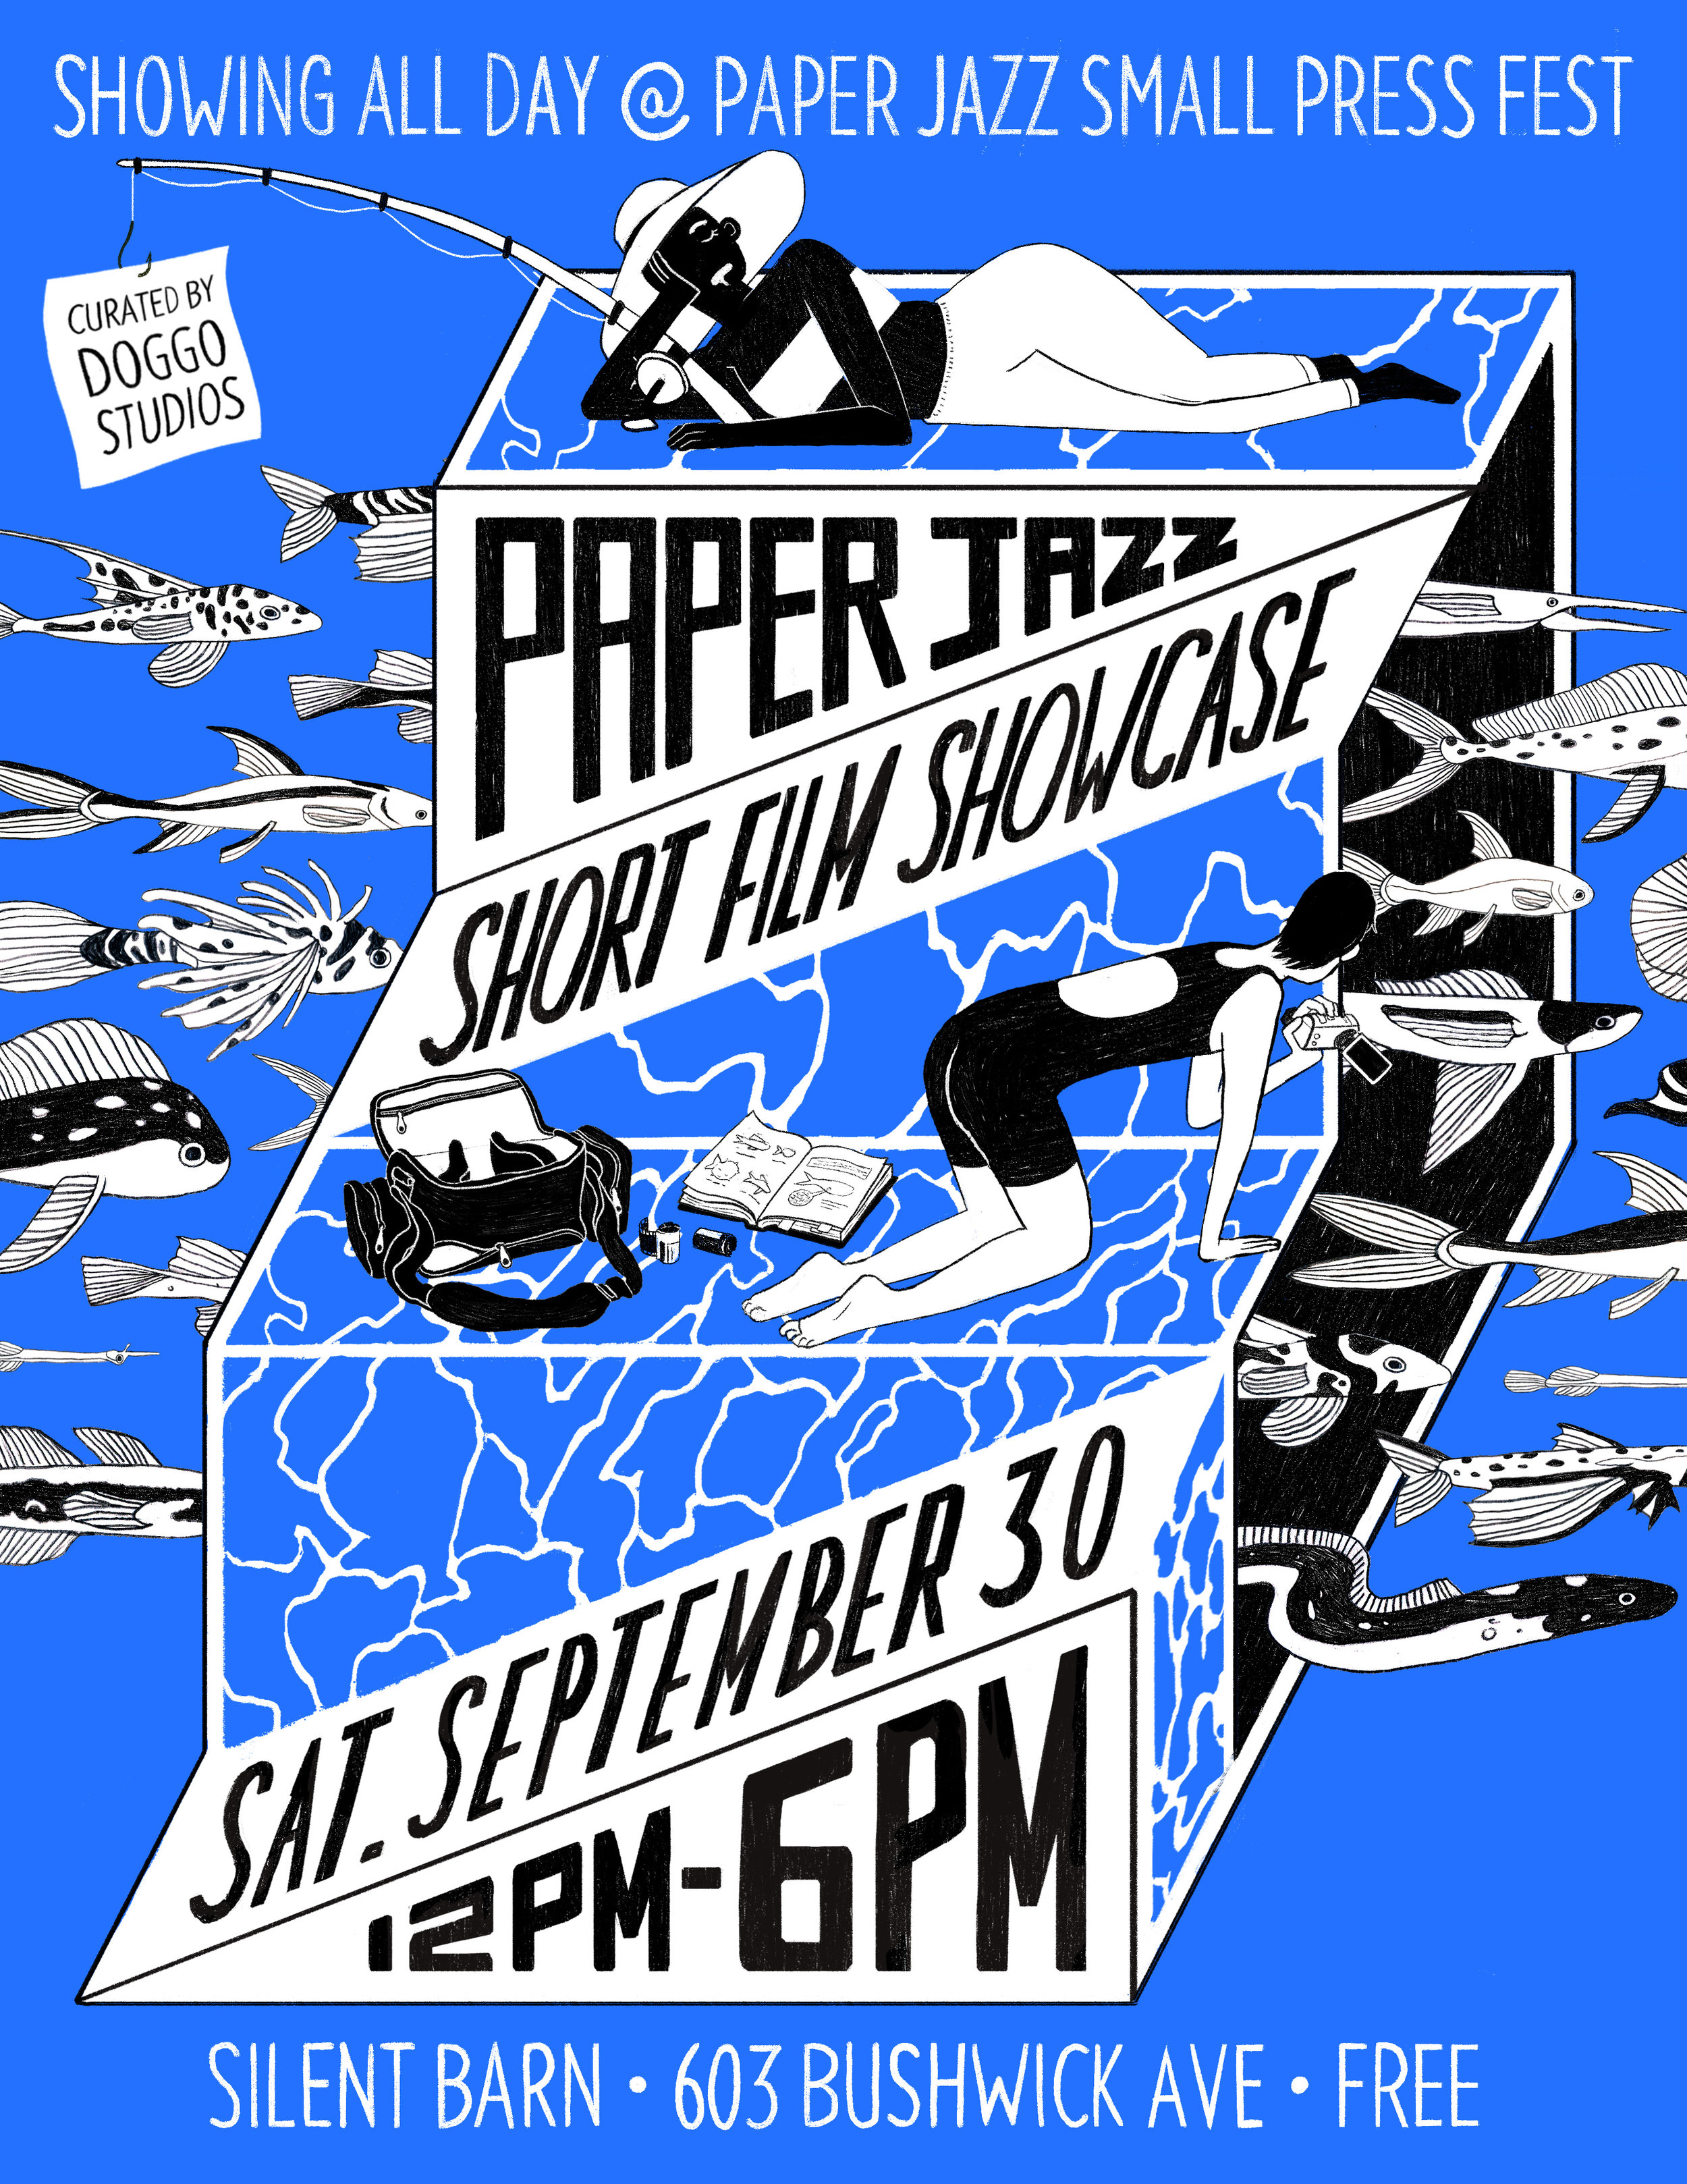 Short Film Showcase Fall 2017 - The 4th semi-annual Paper Jazz Small Press festival once again took place at Silent Barn in Brooklyn, NY. This was our third showcase there, and we kept up with our tradition of hosting Short Films in the Fall.Flier Design by: Angelica AlzonaHere is every NYC-based filmmaker who participated:Benjy BrookeZine HugFaye KahnAlexandra BarskyKeenon FerrellMarika CowanMaya EdelmanAlexander LairdAlessandro EchevarriaStephen SuesDennis MoranPeter SchmidtDrew ShieldsBarry BrunerNogDeanna DeMaglie